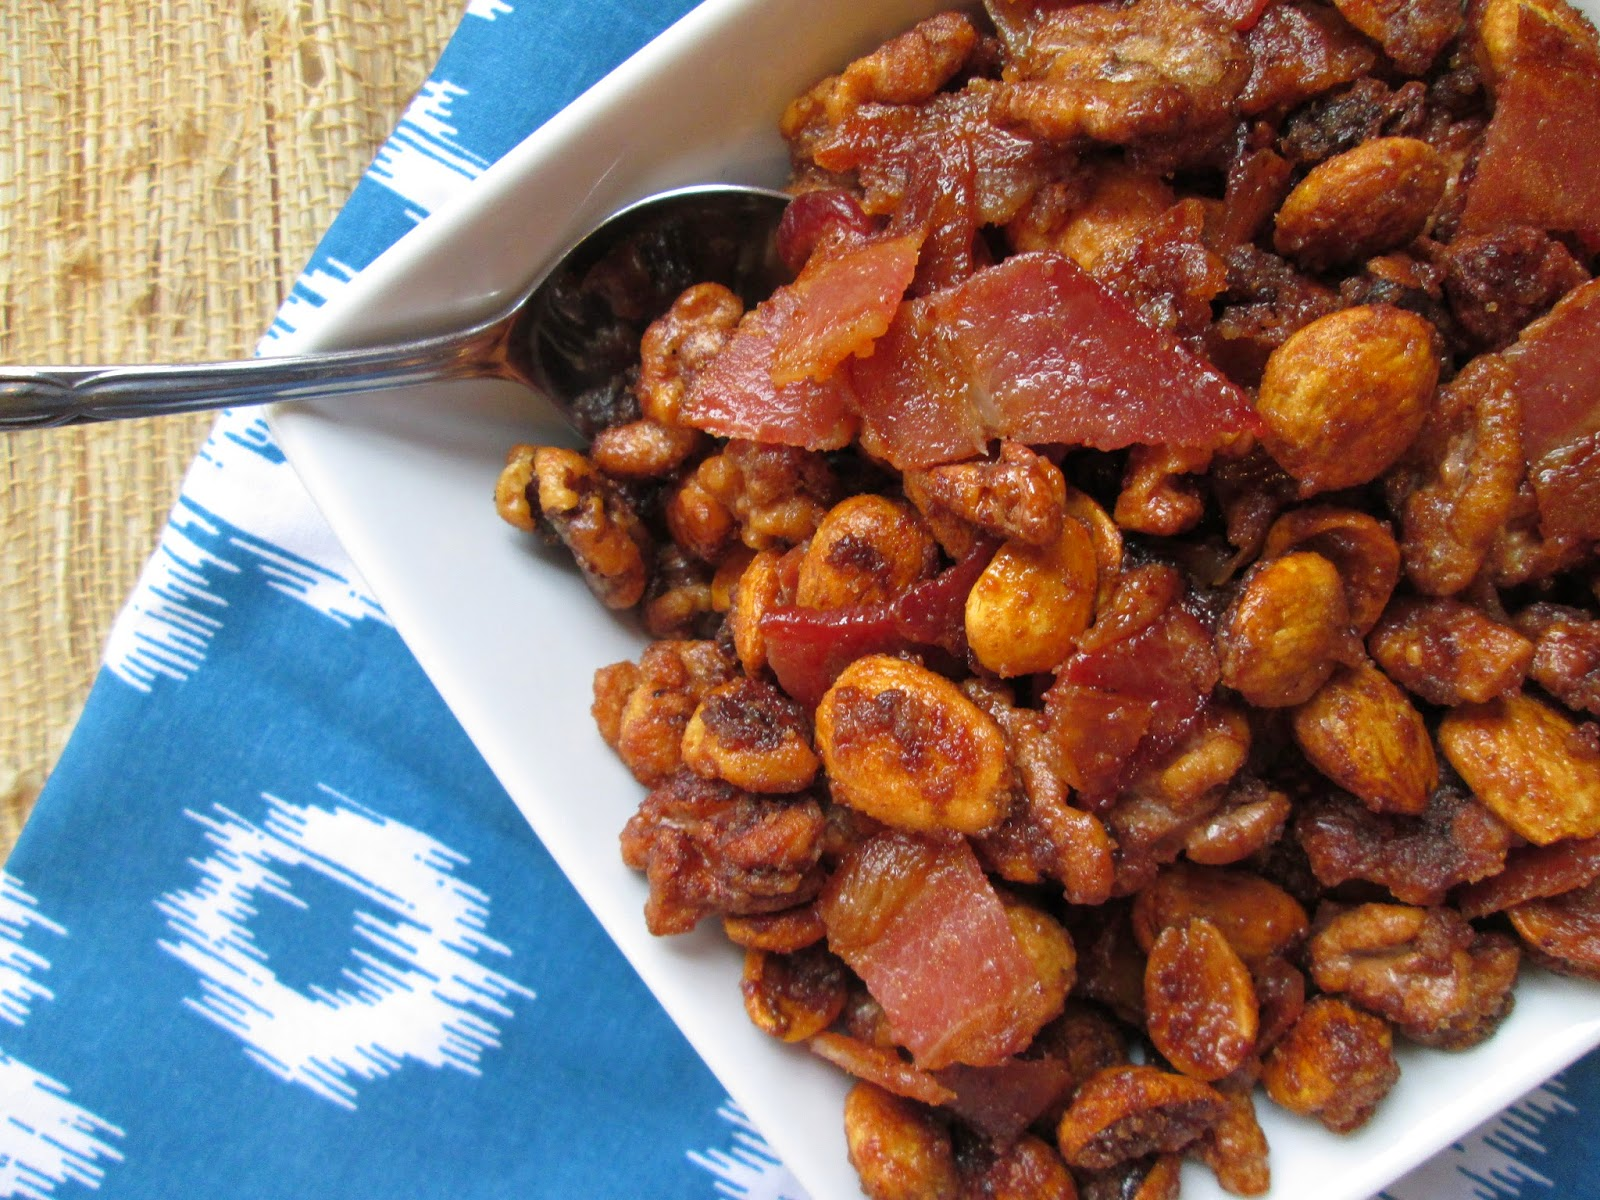 Stirring the Pot: Sweet and Salty Bacon and Nuts